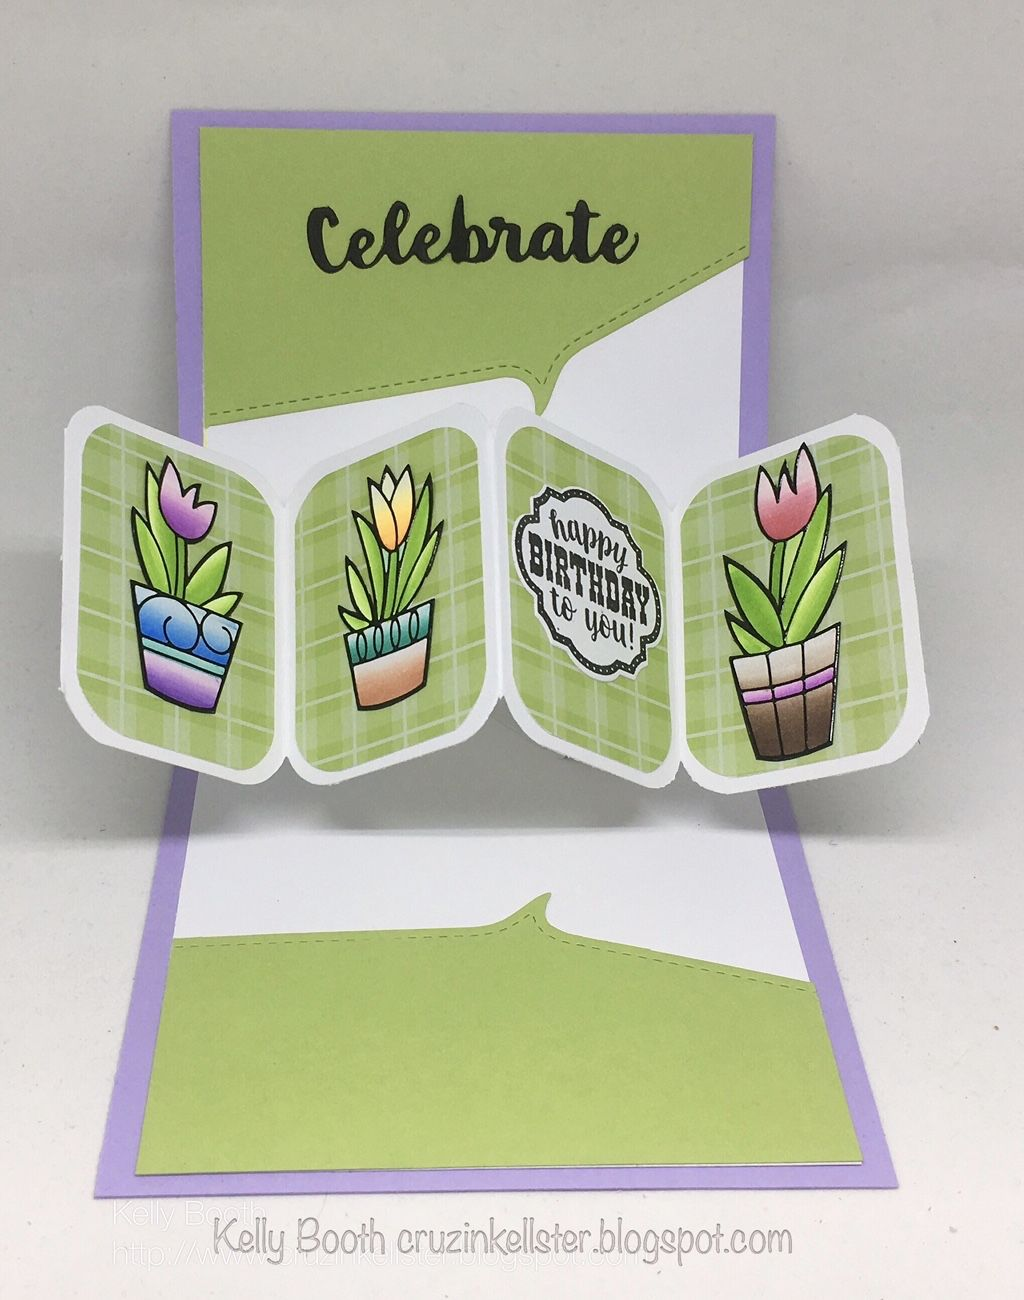 Kelly Booth using the Pop it Ups Twist Circle and Flourish Gift Frame die sets by Karen Burniston for Elizabeth Craft Designs.